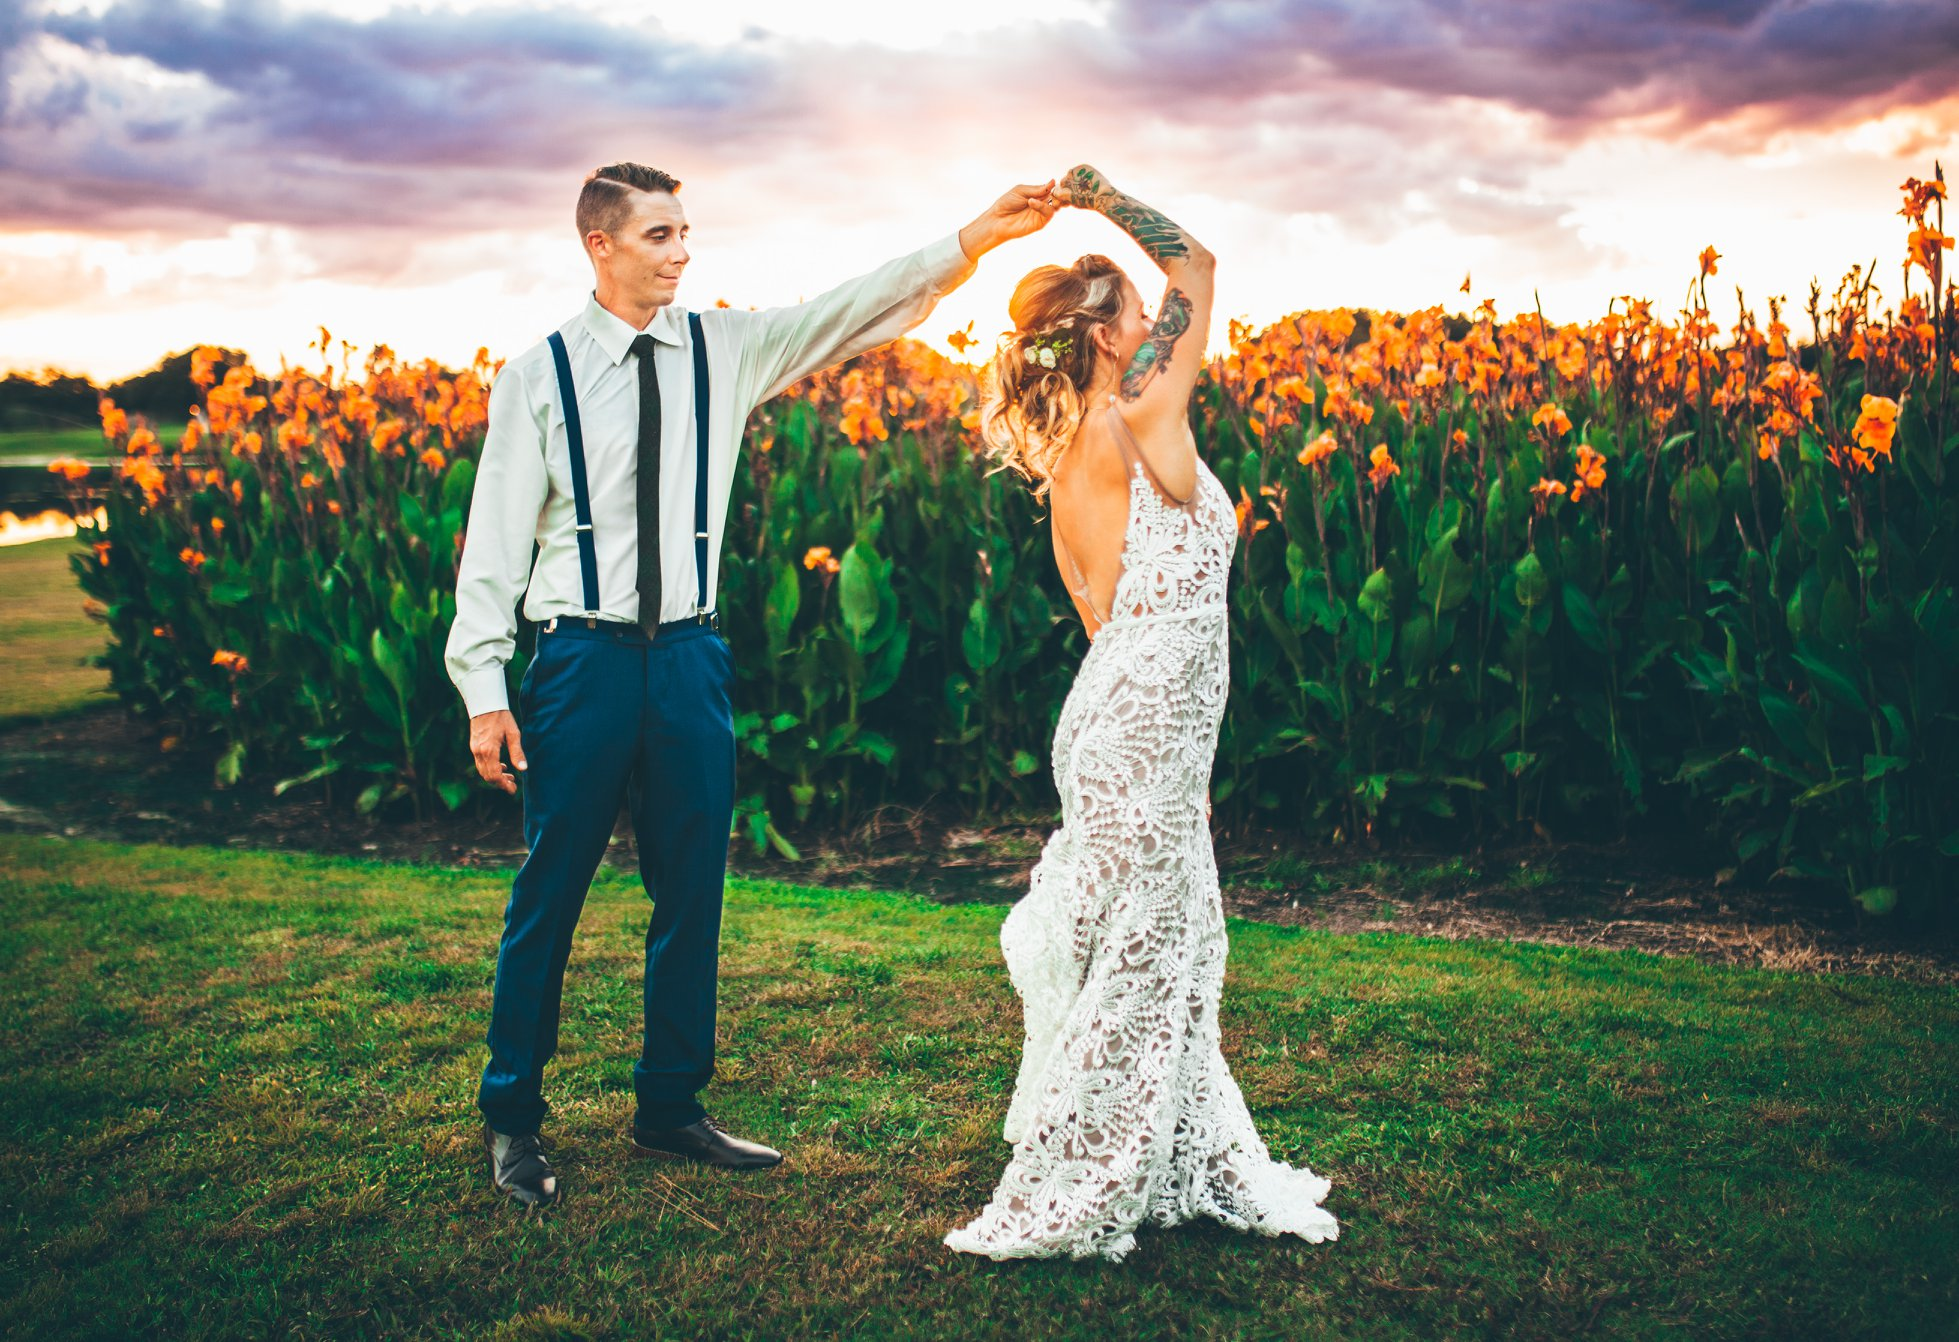 Bride and groom dancing in front of large orange lillies at sunset